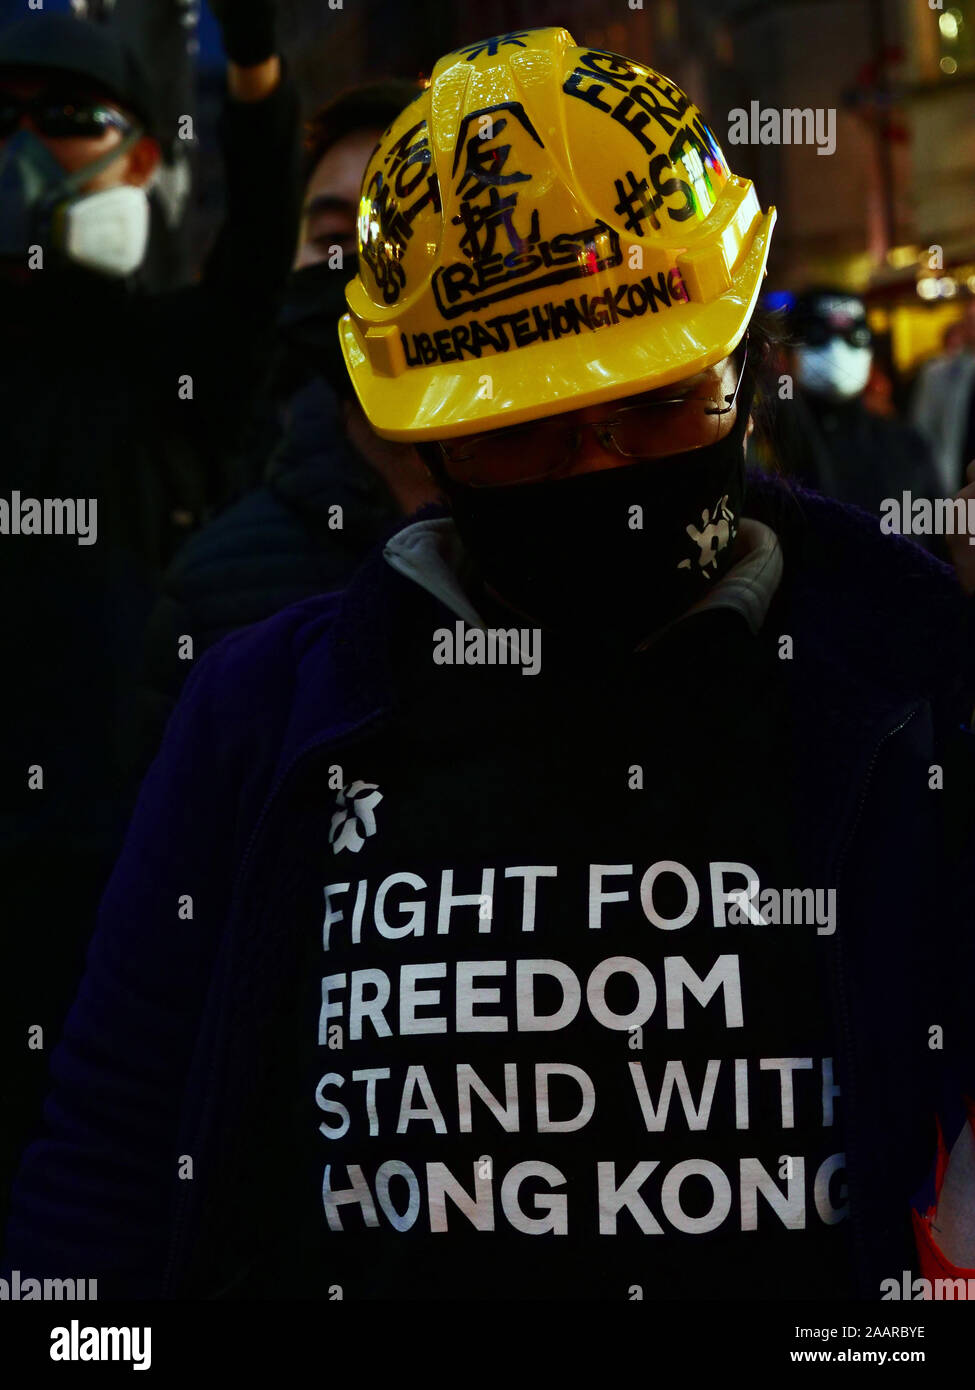 London, UK. 23rd November. Supporters of the protests in Hong Kong demanding democracy and freedom seen on a demonstration in the West End of London, UK. Credit: Joe Kuis / Alamy News Stock Photo